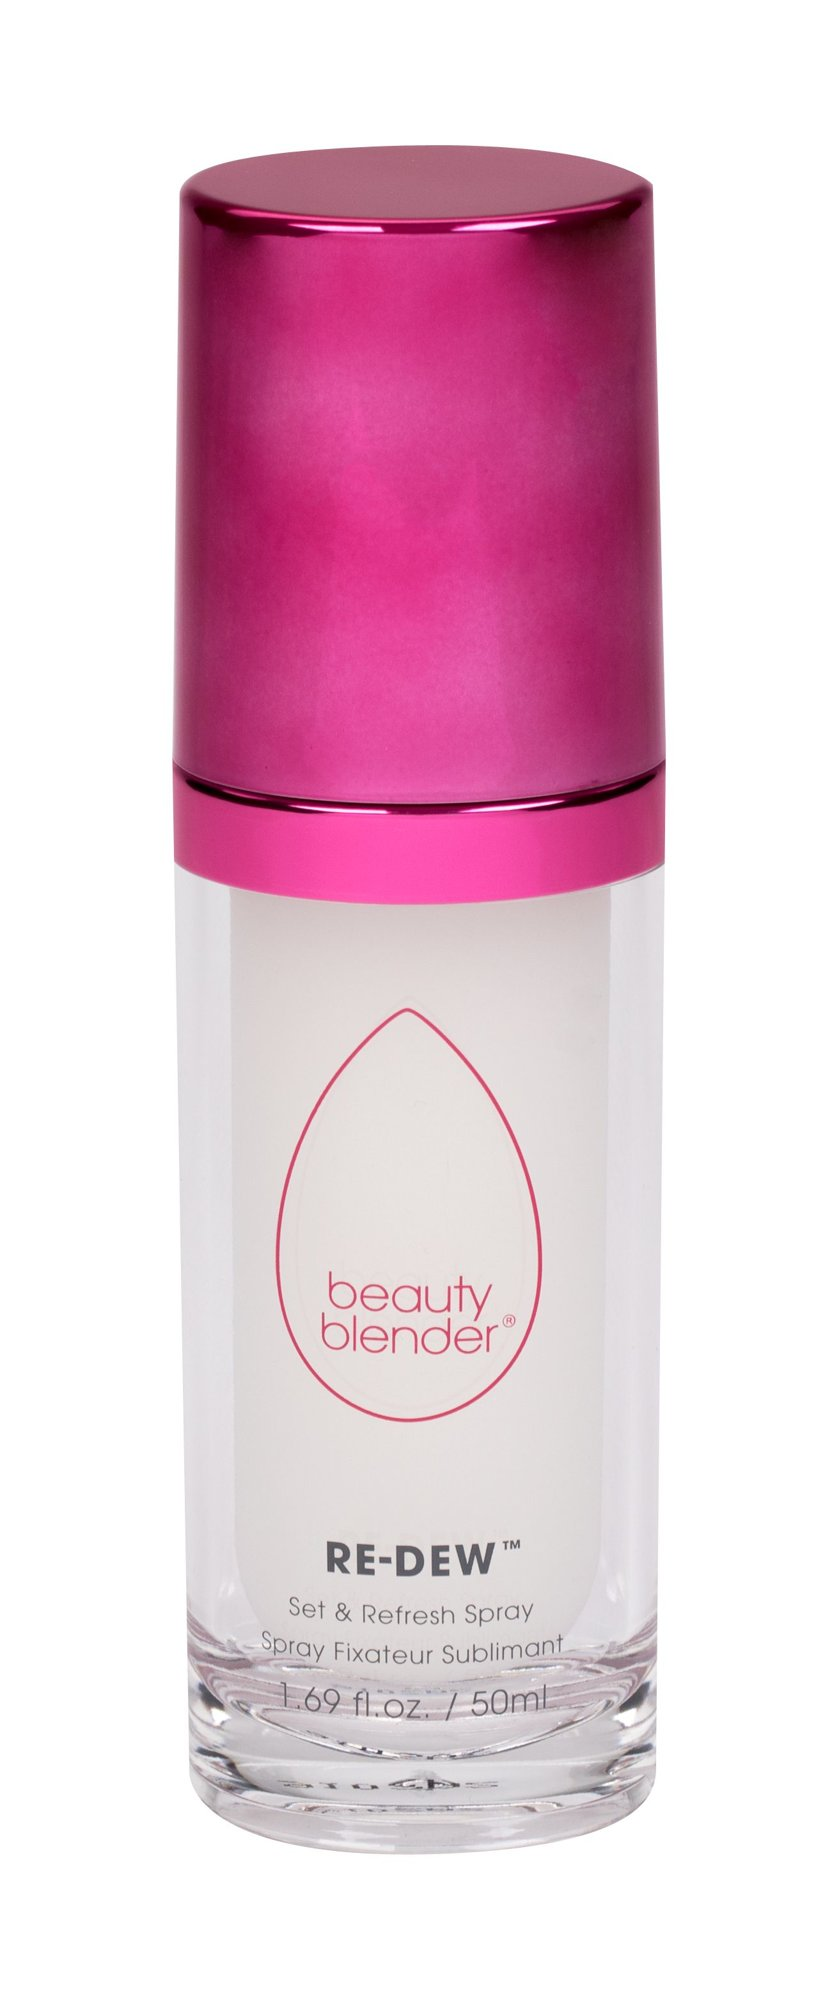 beautyblender Re-Dew Set & Refresh (Pleťová voda a sprej, W, 50 ml)